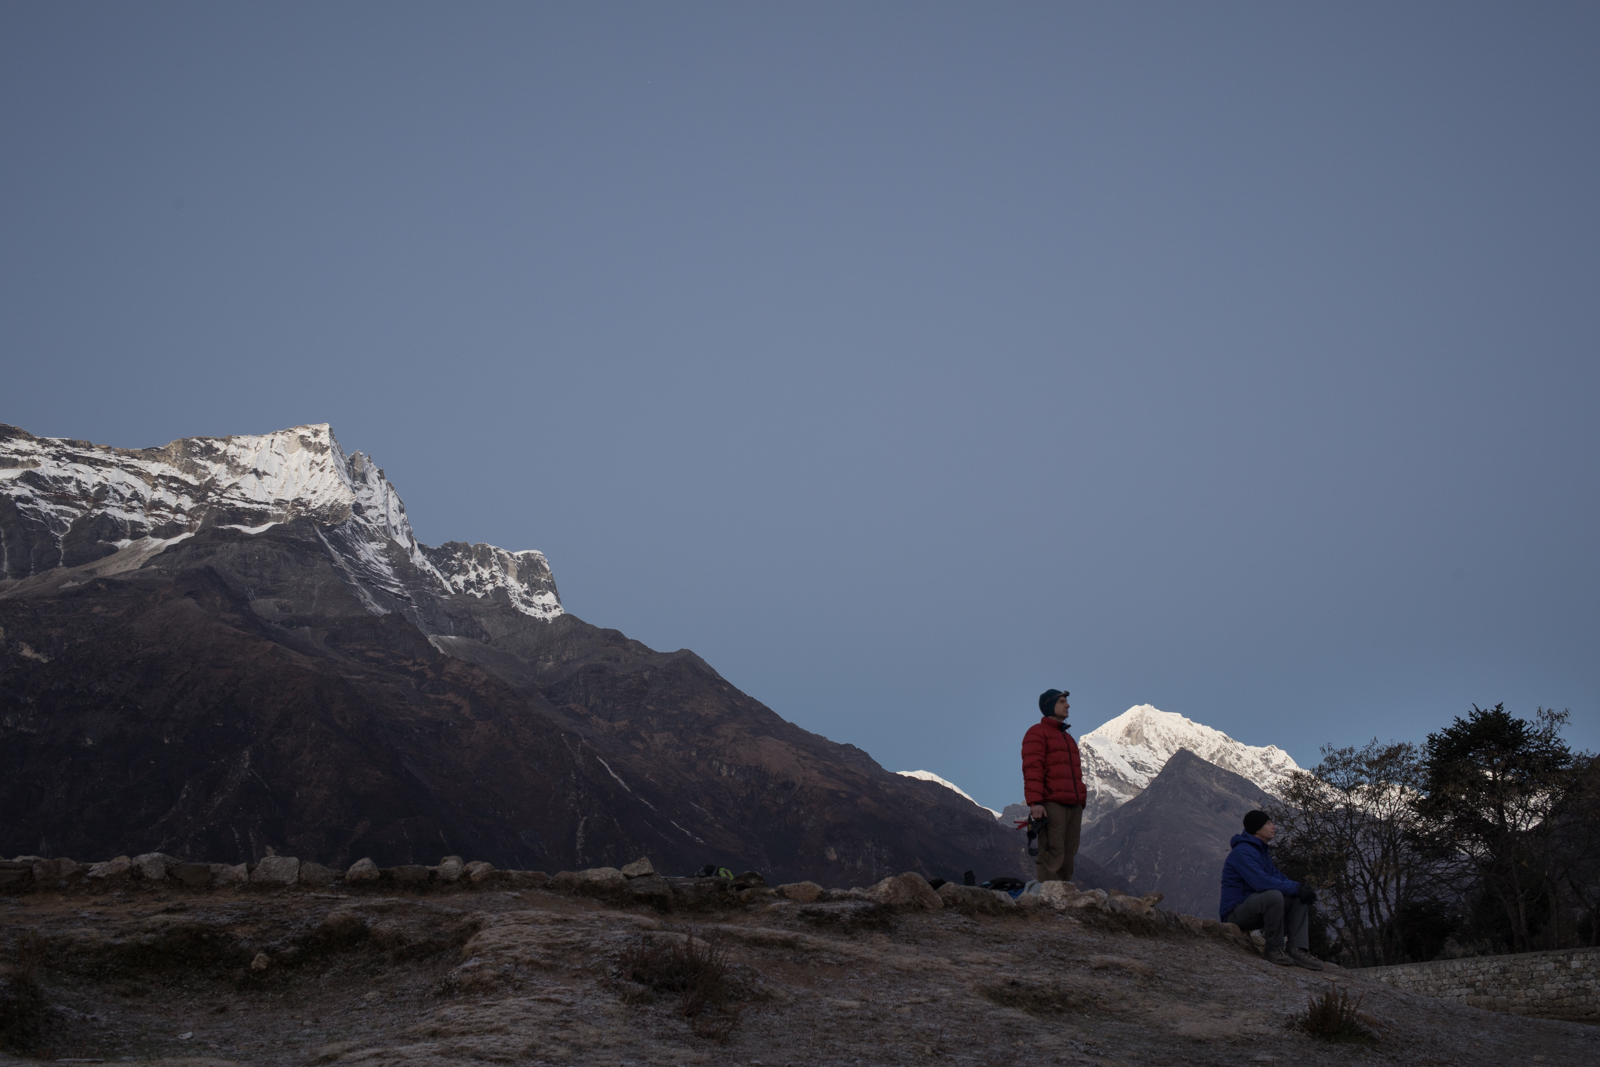 Ambrose and Russ watch the horizon as the sun rises and brings light to the Everest valley.